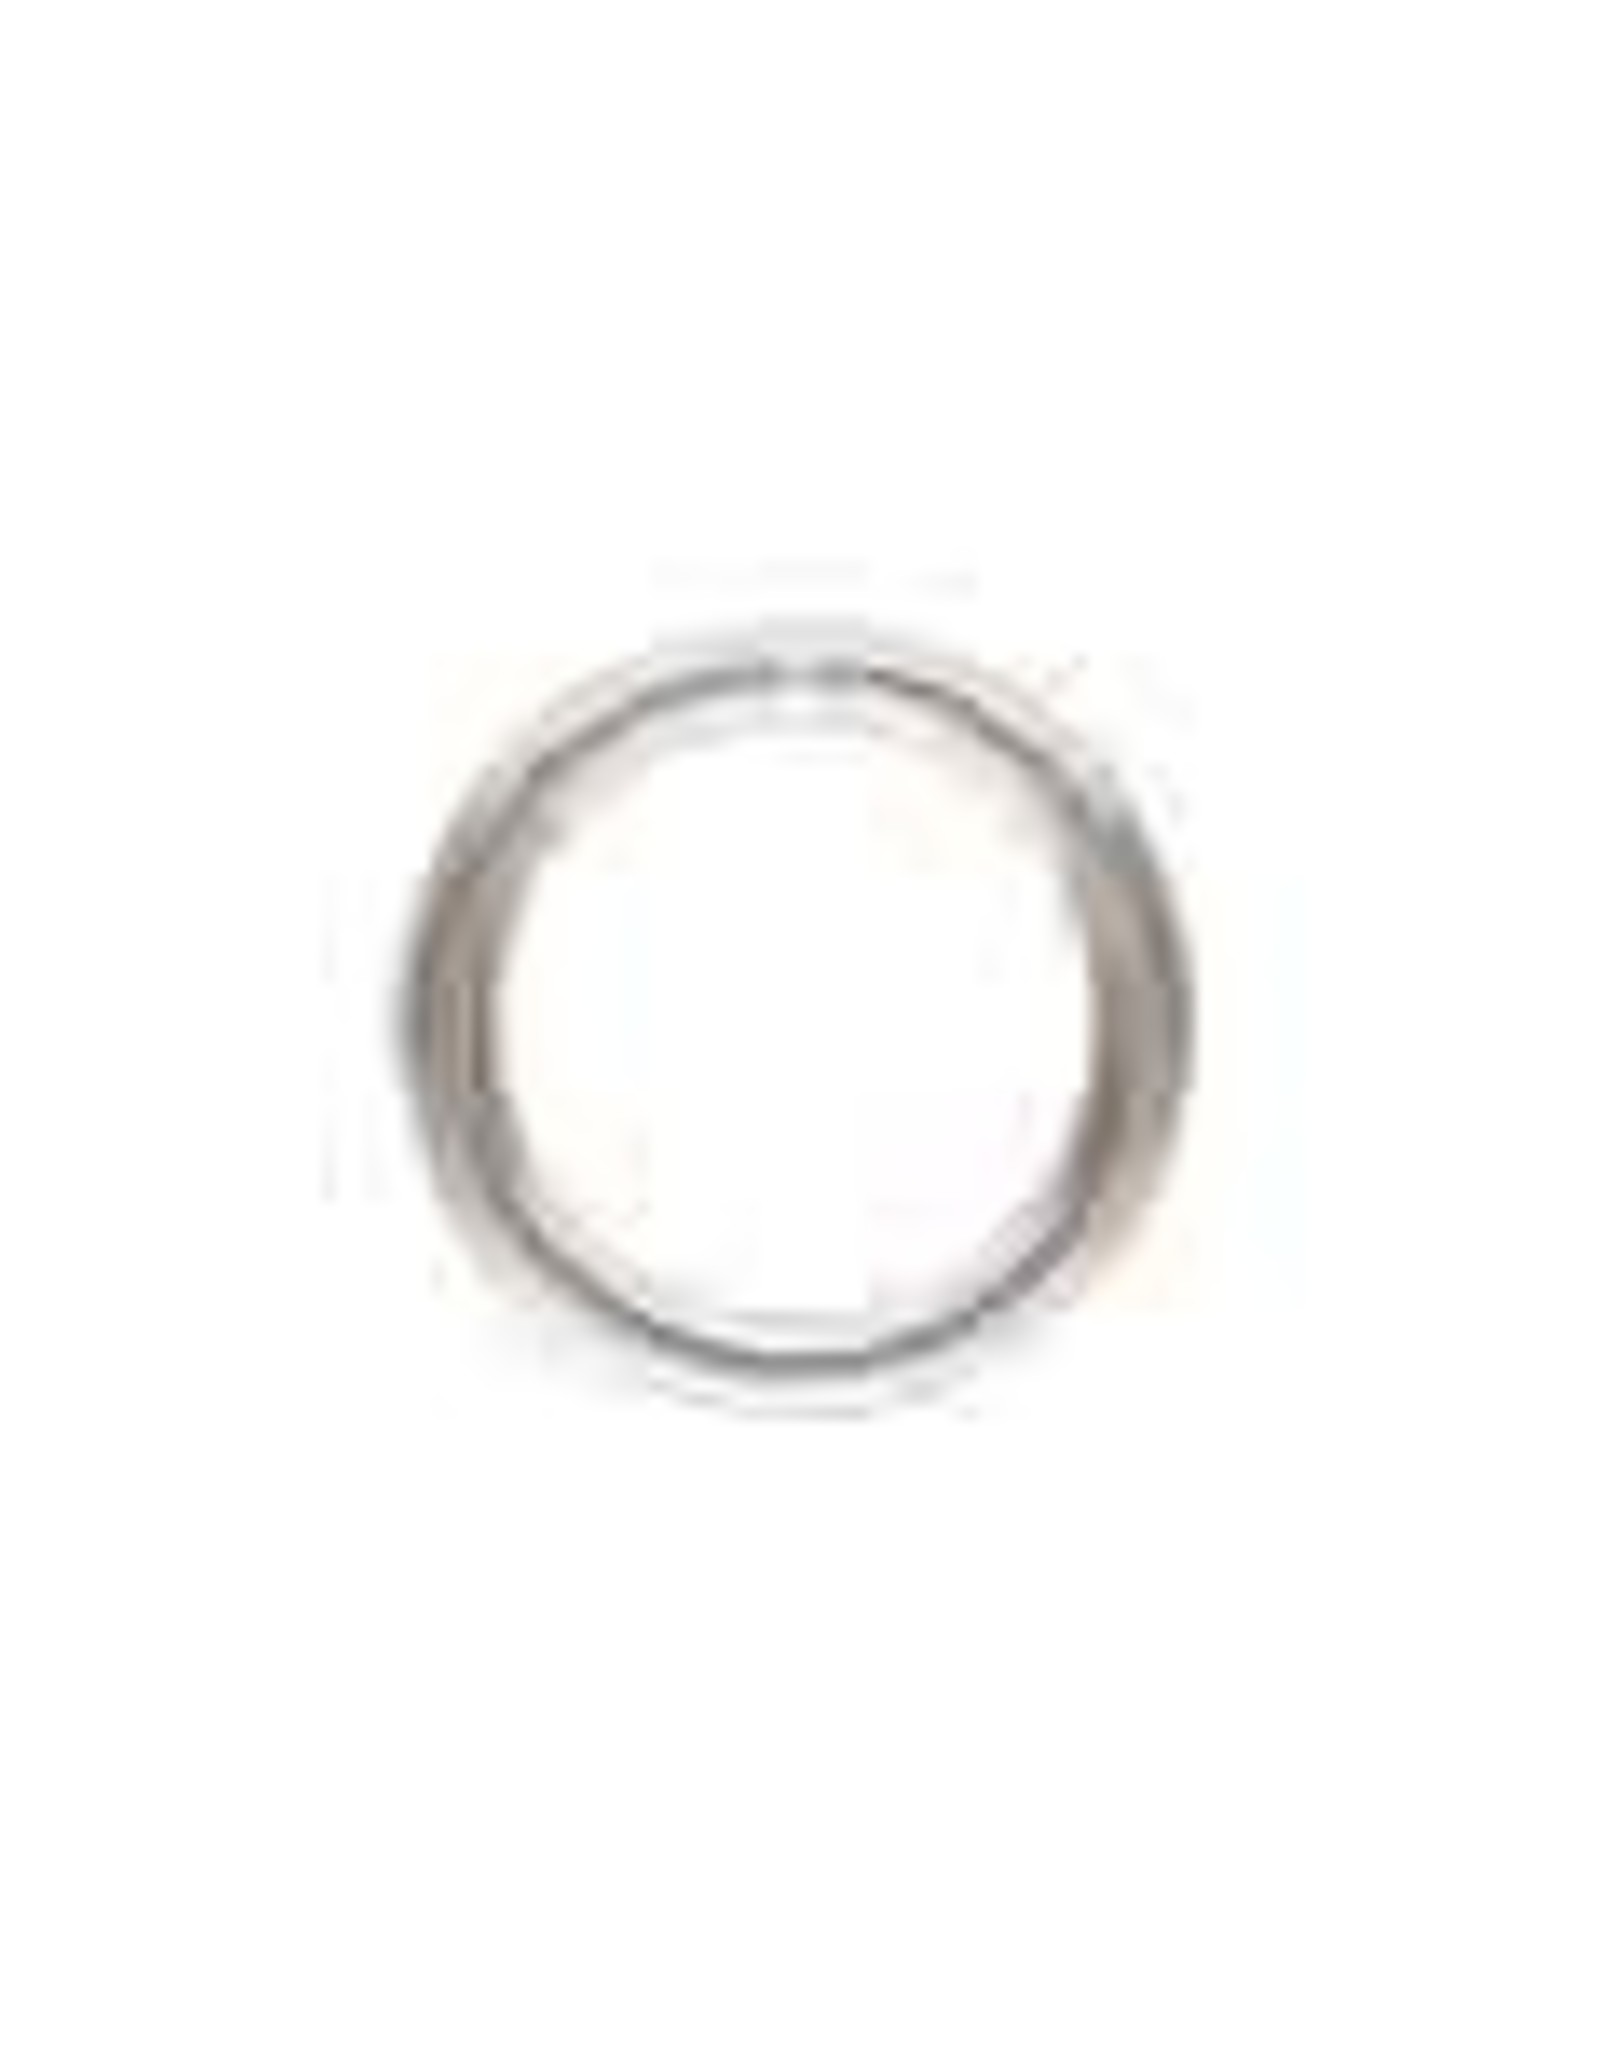 6mm Closed Ring 20ga Sterling Silver Qty 10